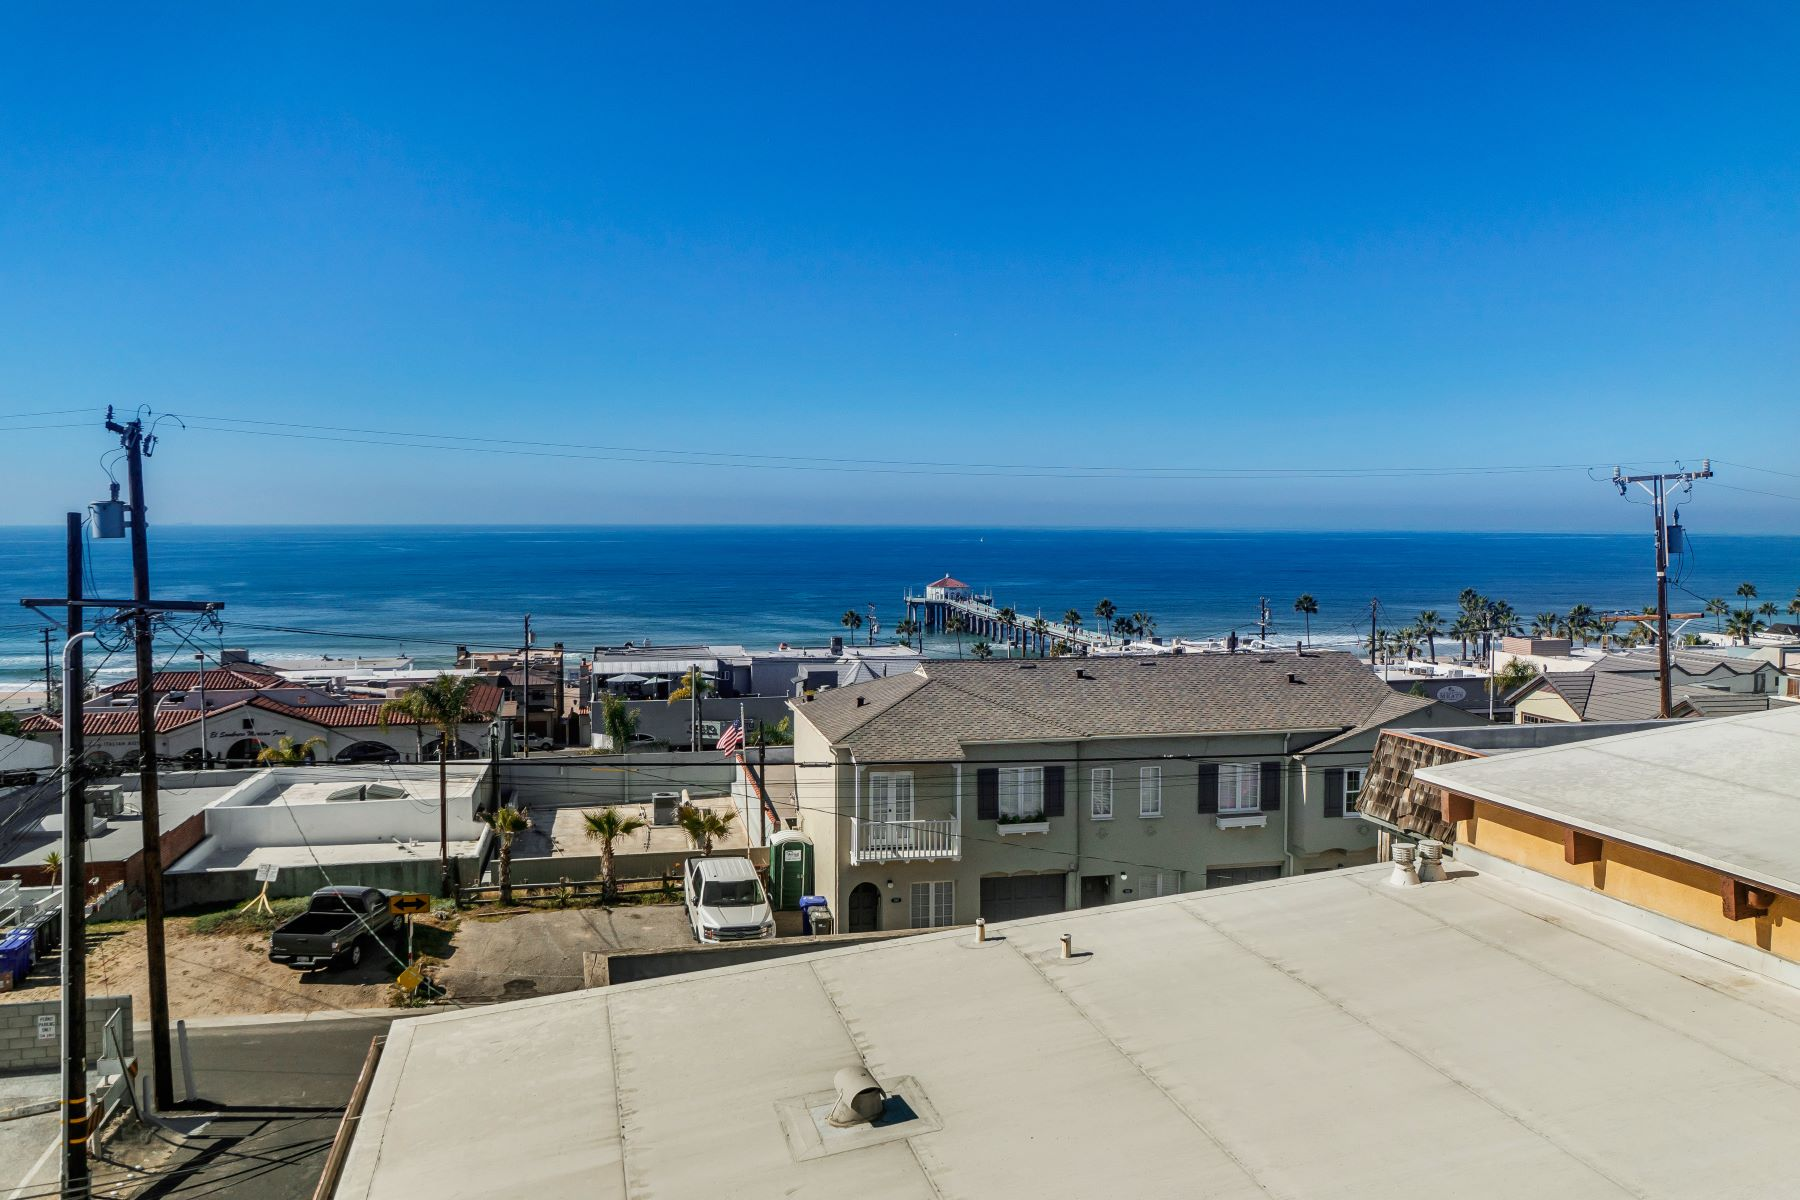 Single Family Homes for Sale at 229 10th Place, Manhattan Beach, CA 90266 229 10th Place Manhattan Beach, California 90266 United States